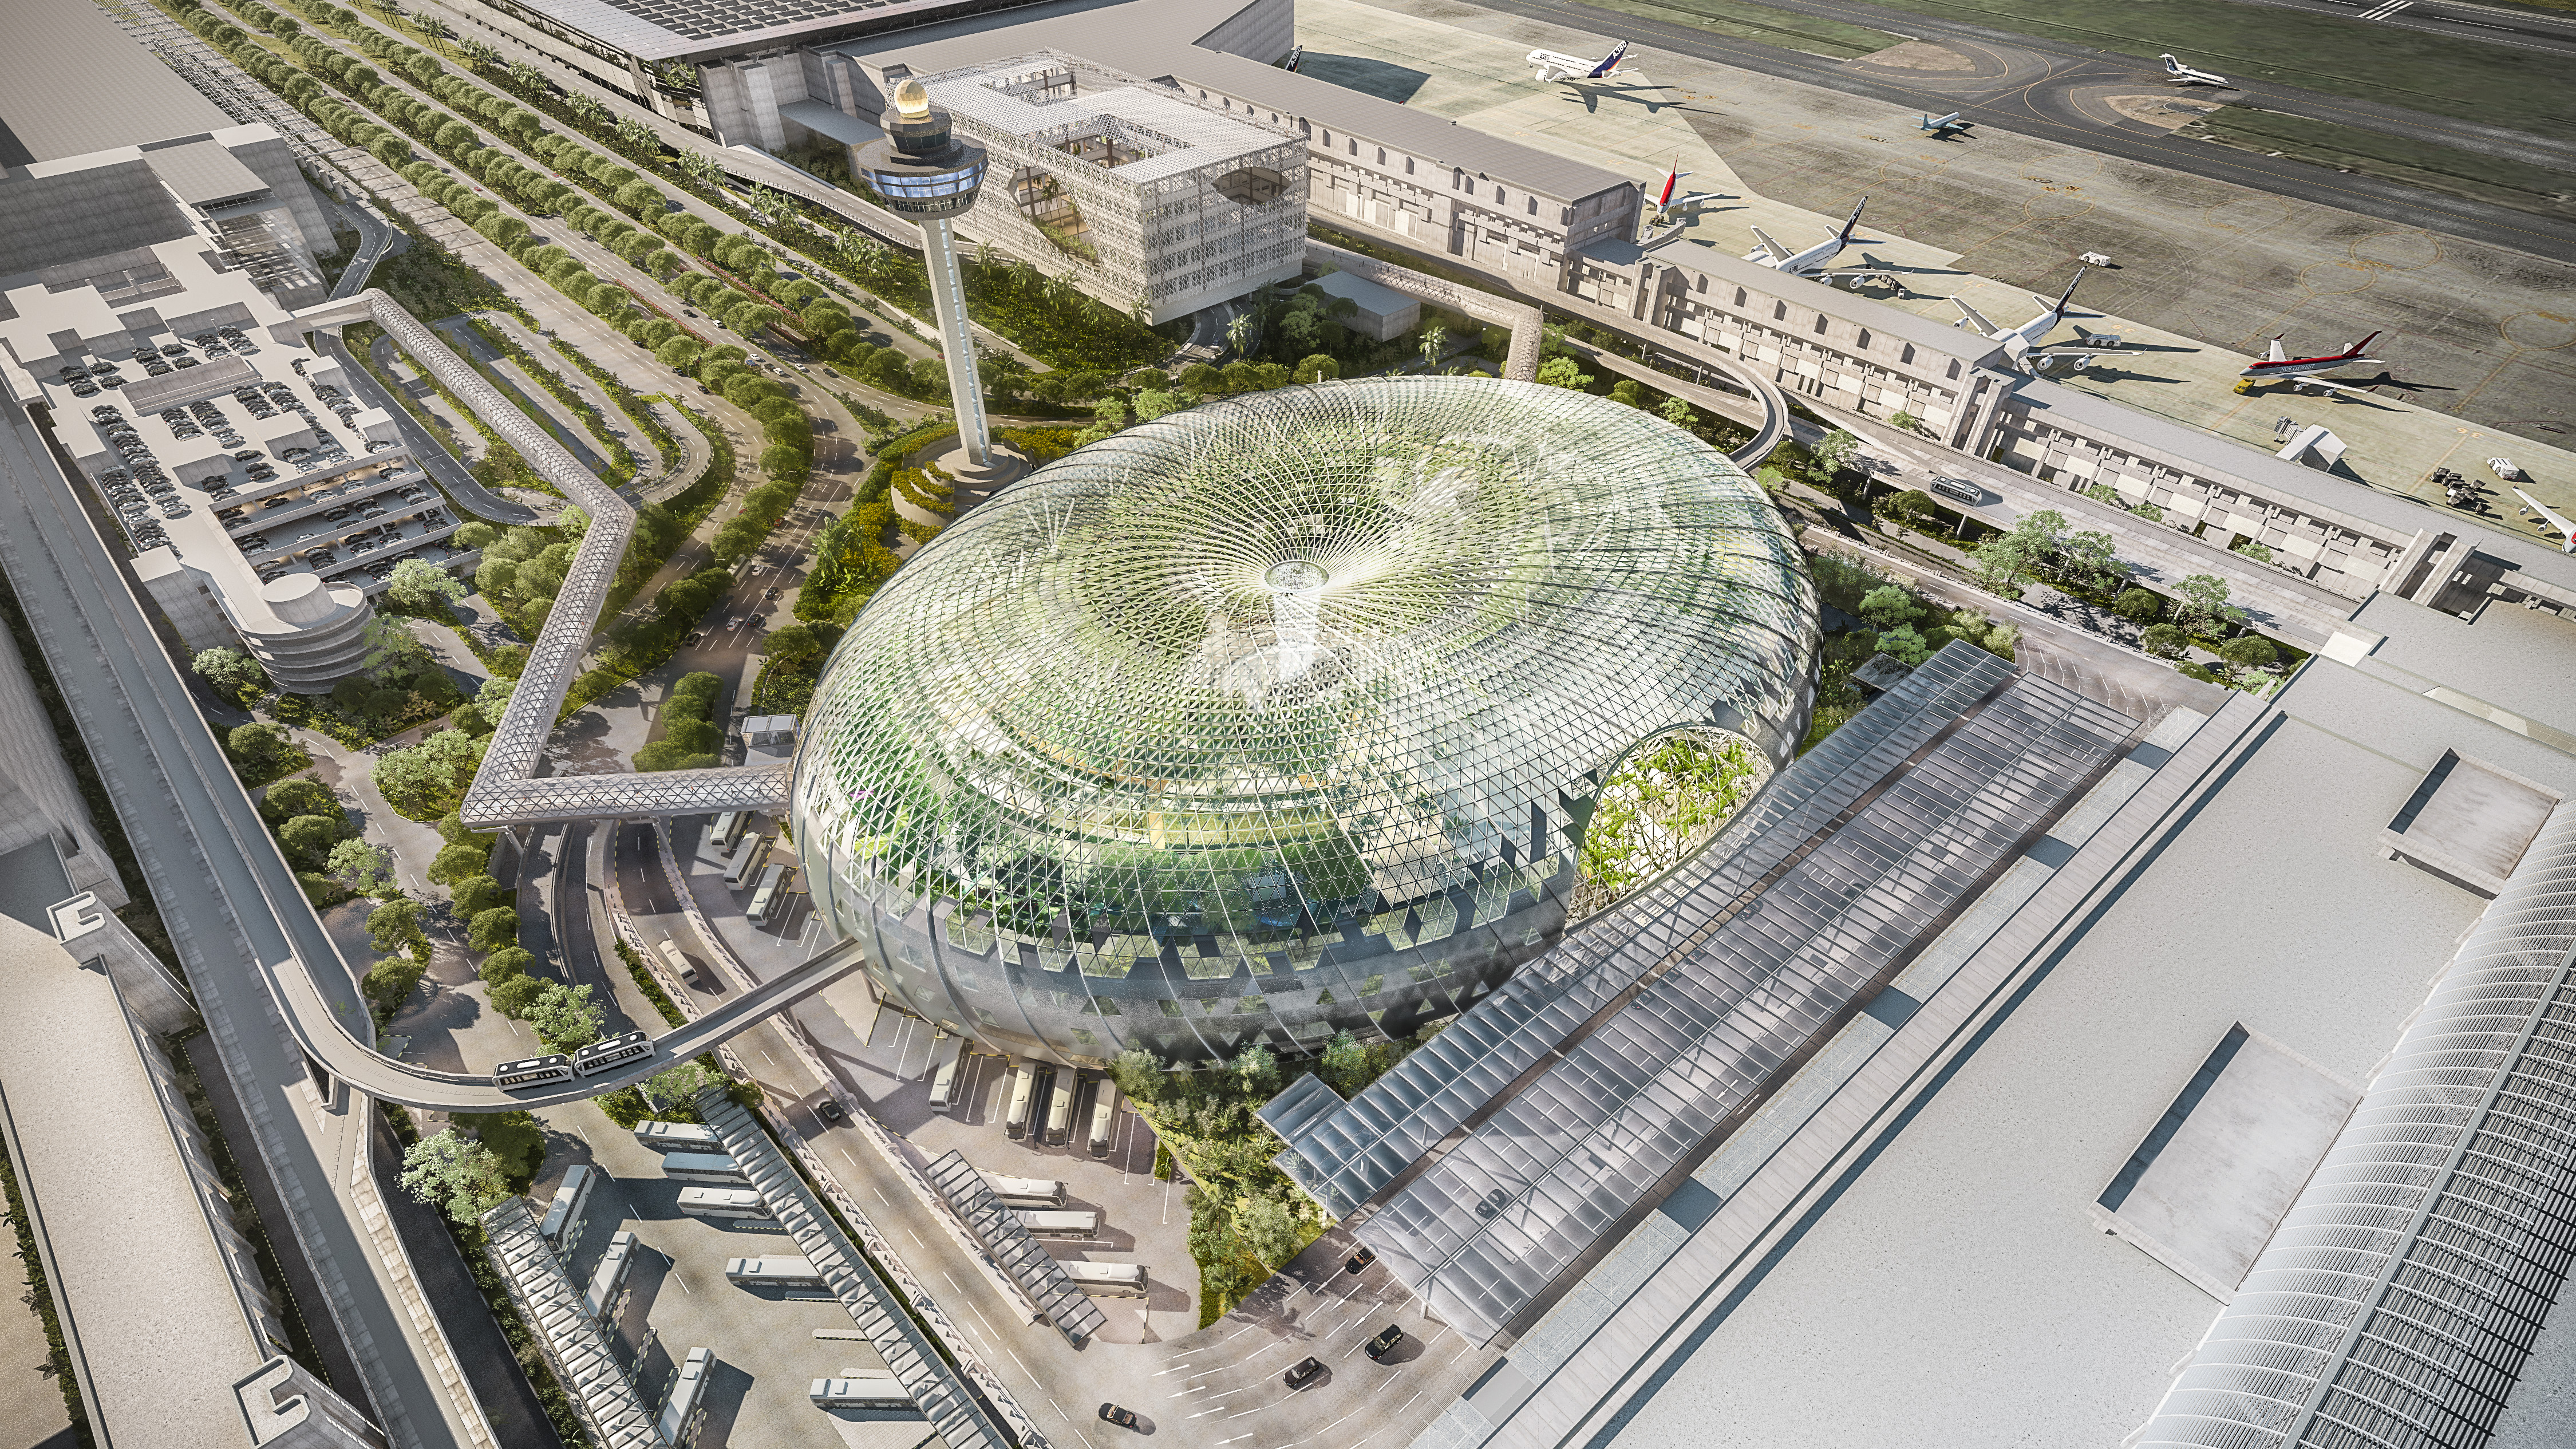 Aerial view of Jewel Changi Airport. Photo courtesy: Jewel Changi Airport Development